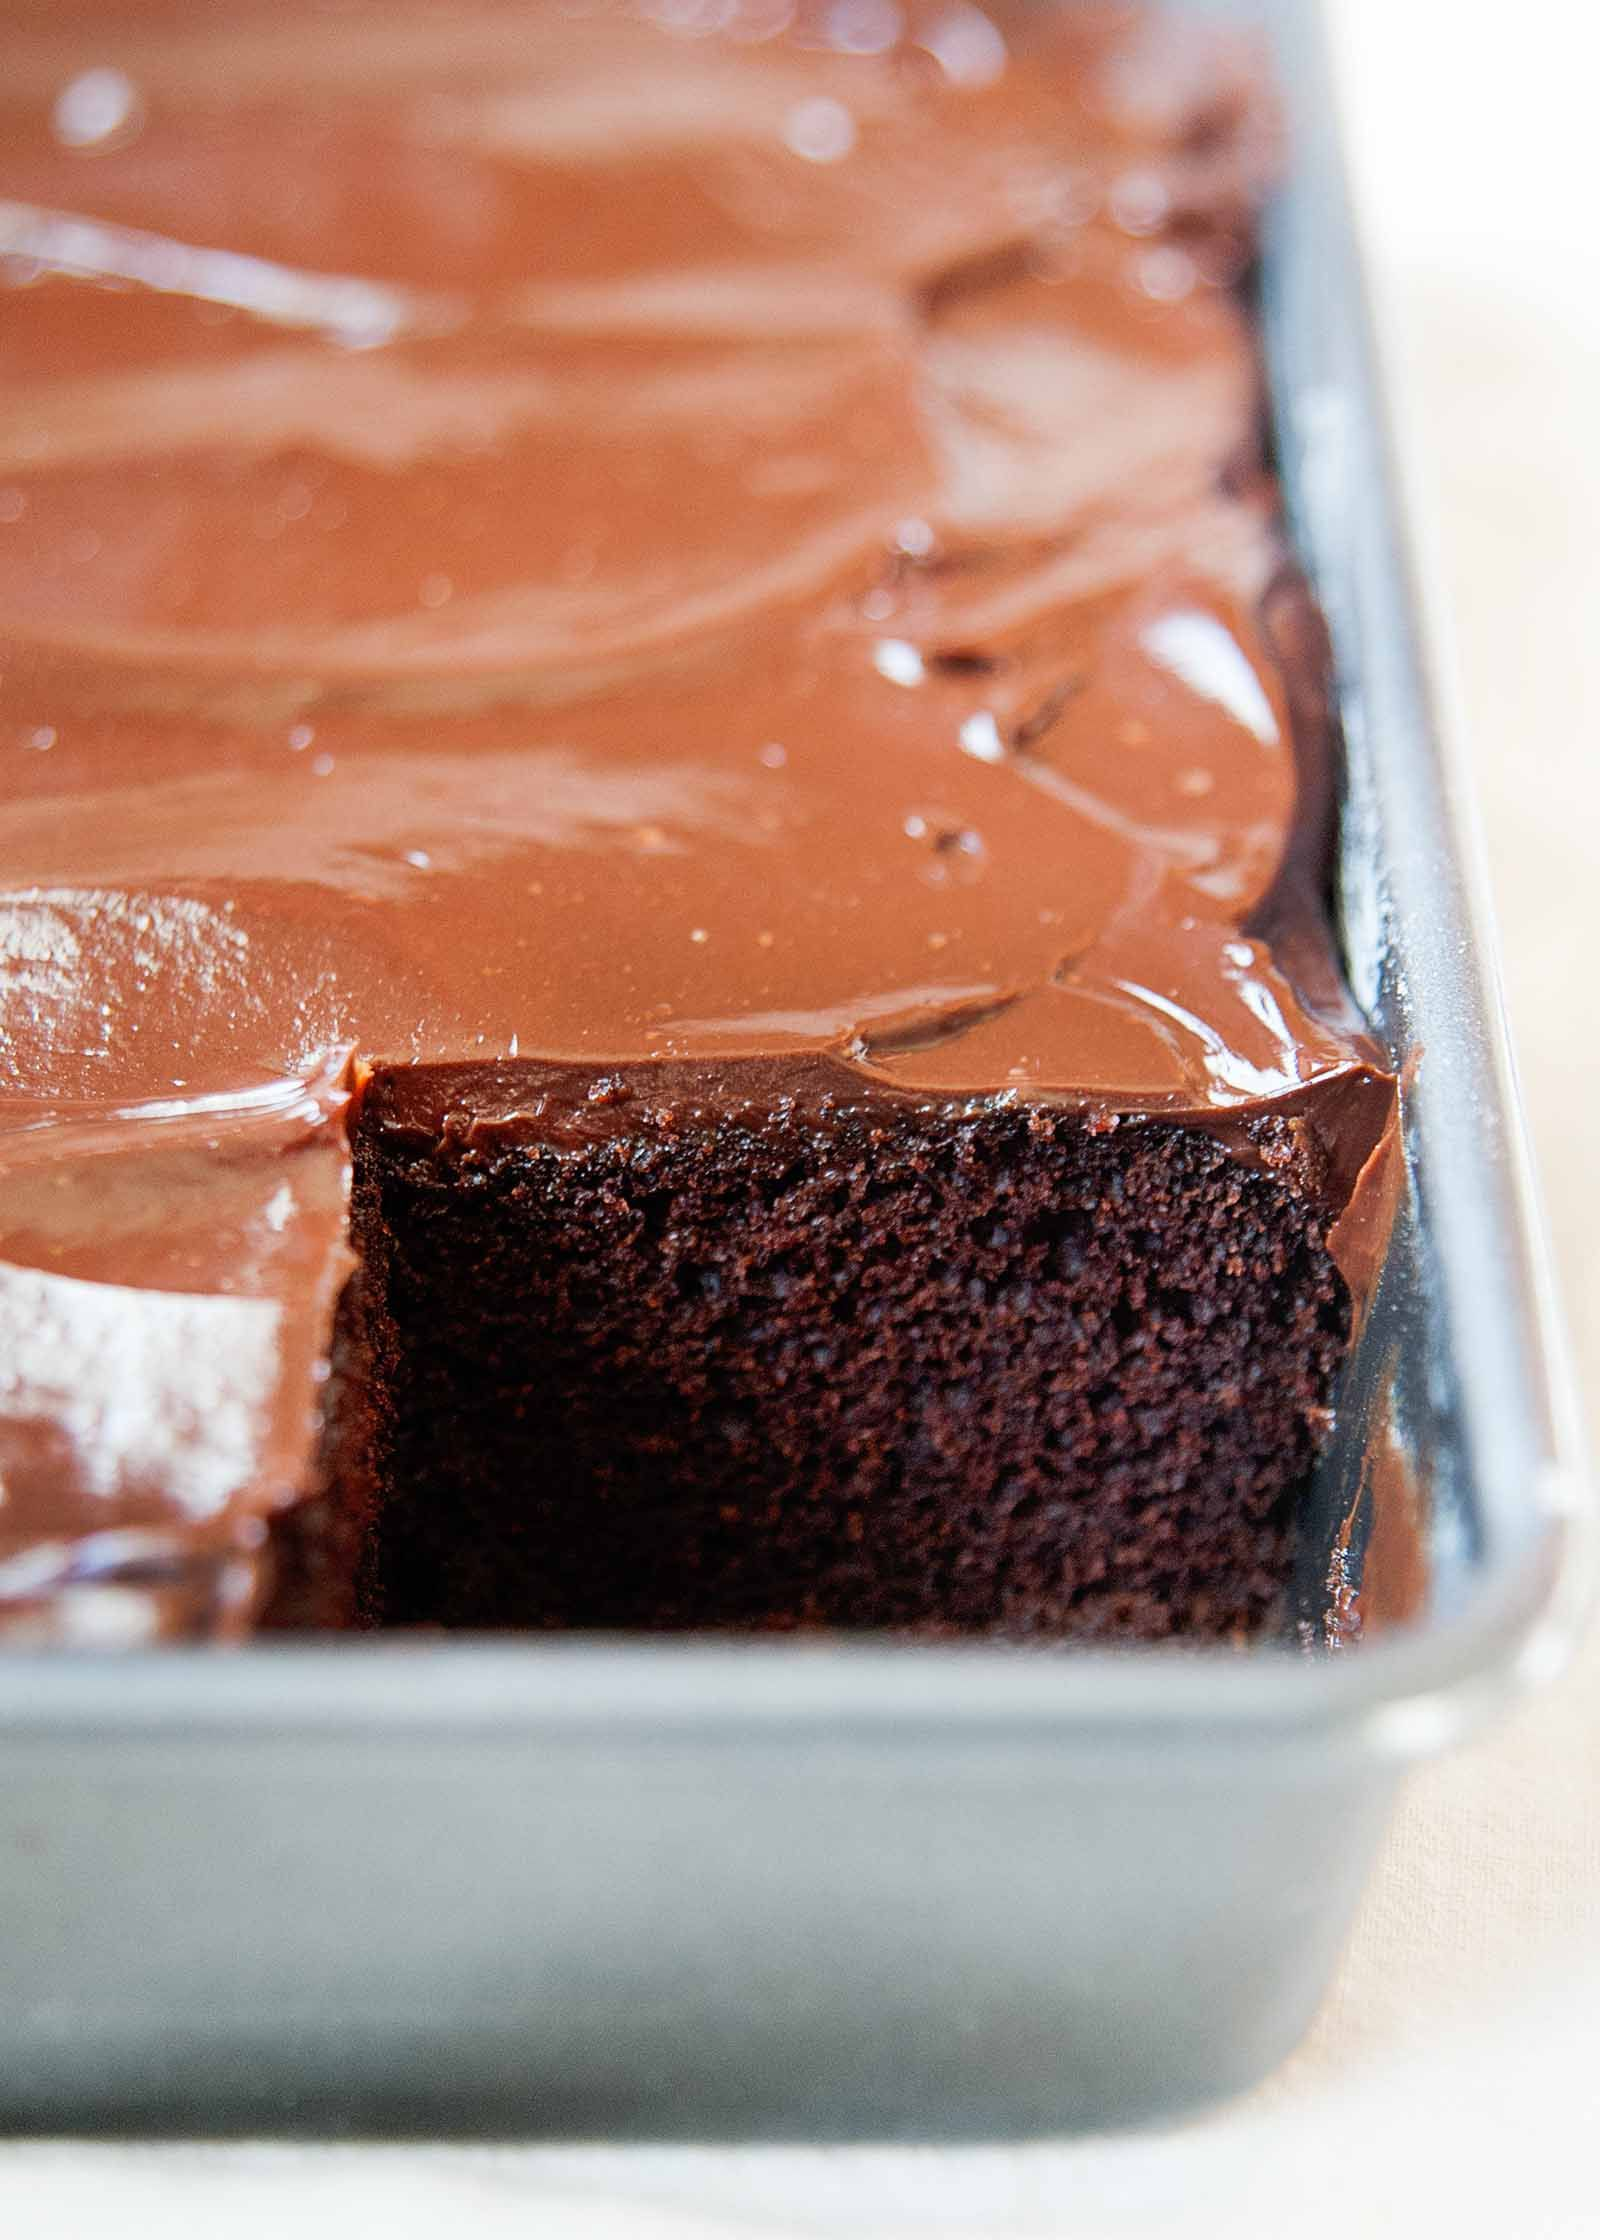 Chocolate Sour Cream Cake Homemade Frosting Simplyrecipes Com Recipe Sour Cream Chocolate Cake Cake Recipe With Sour Cream Sour Cream Recipes